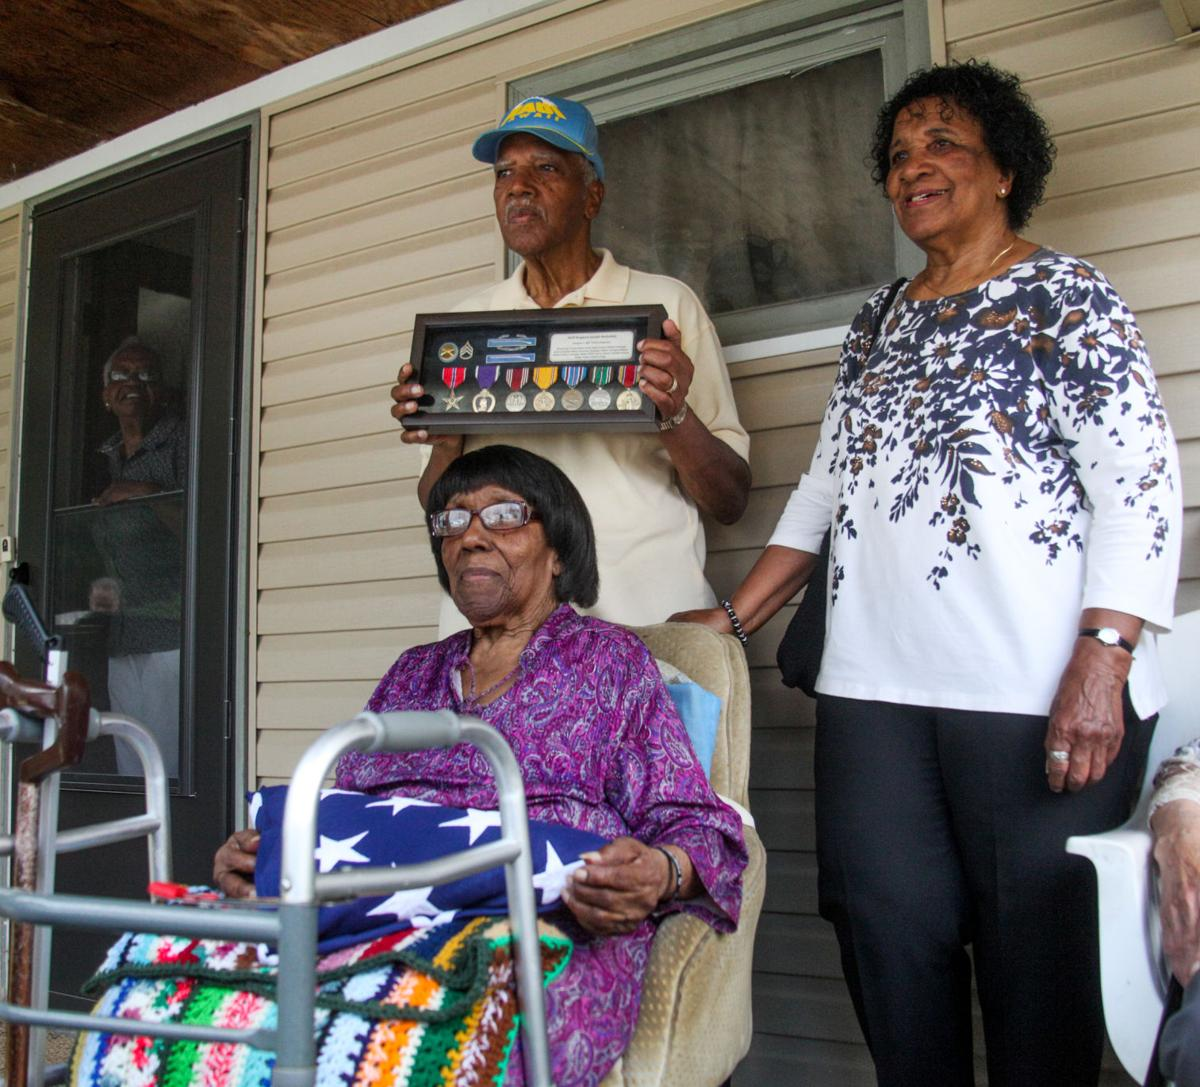 Family of Joseph Barksdale presented honors commemorating his heroic service 725b3c297